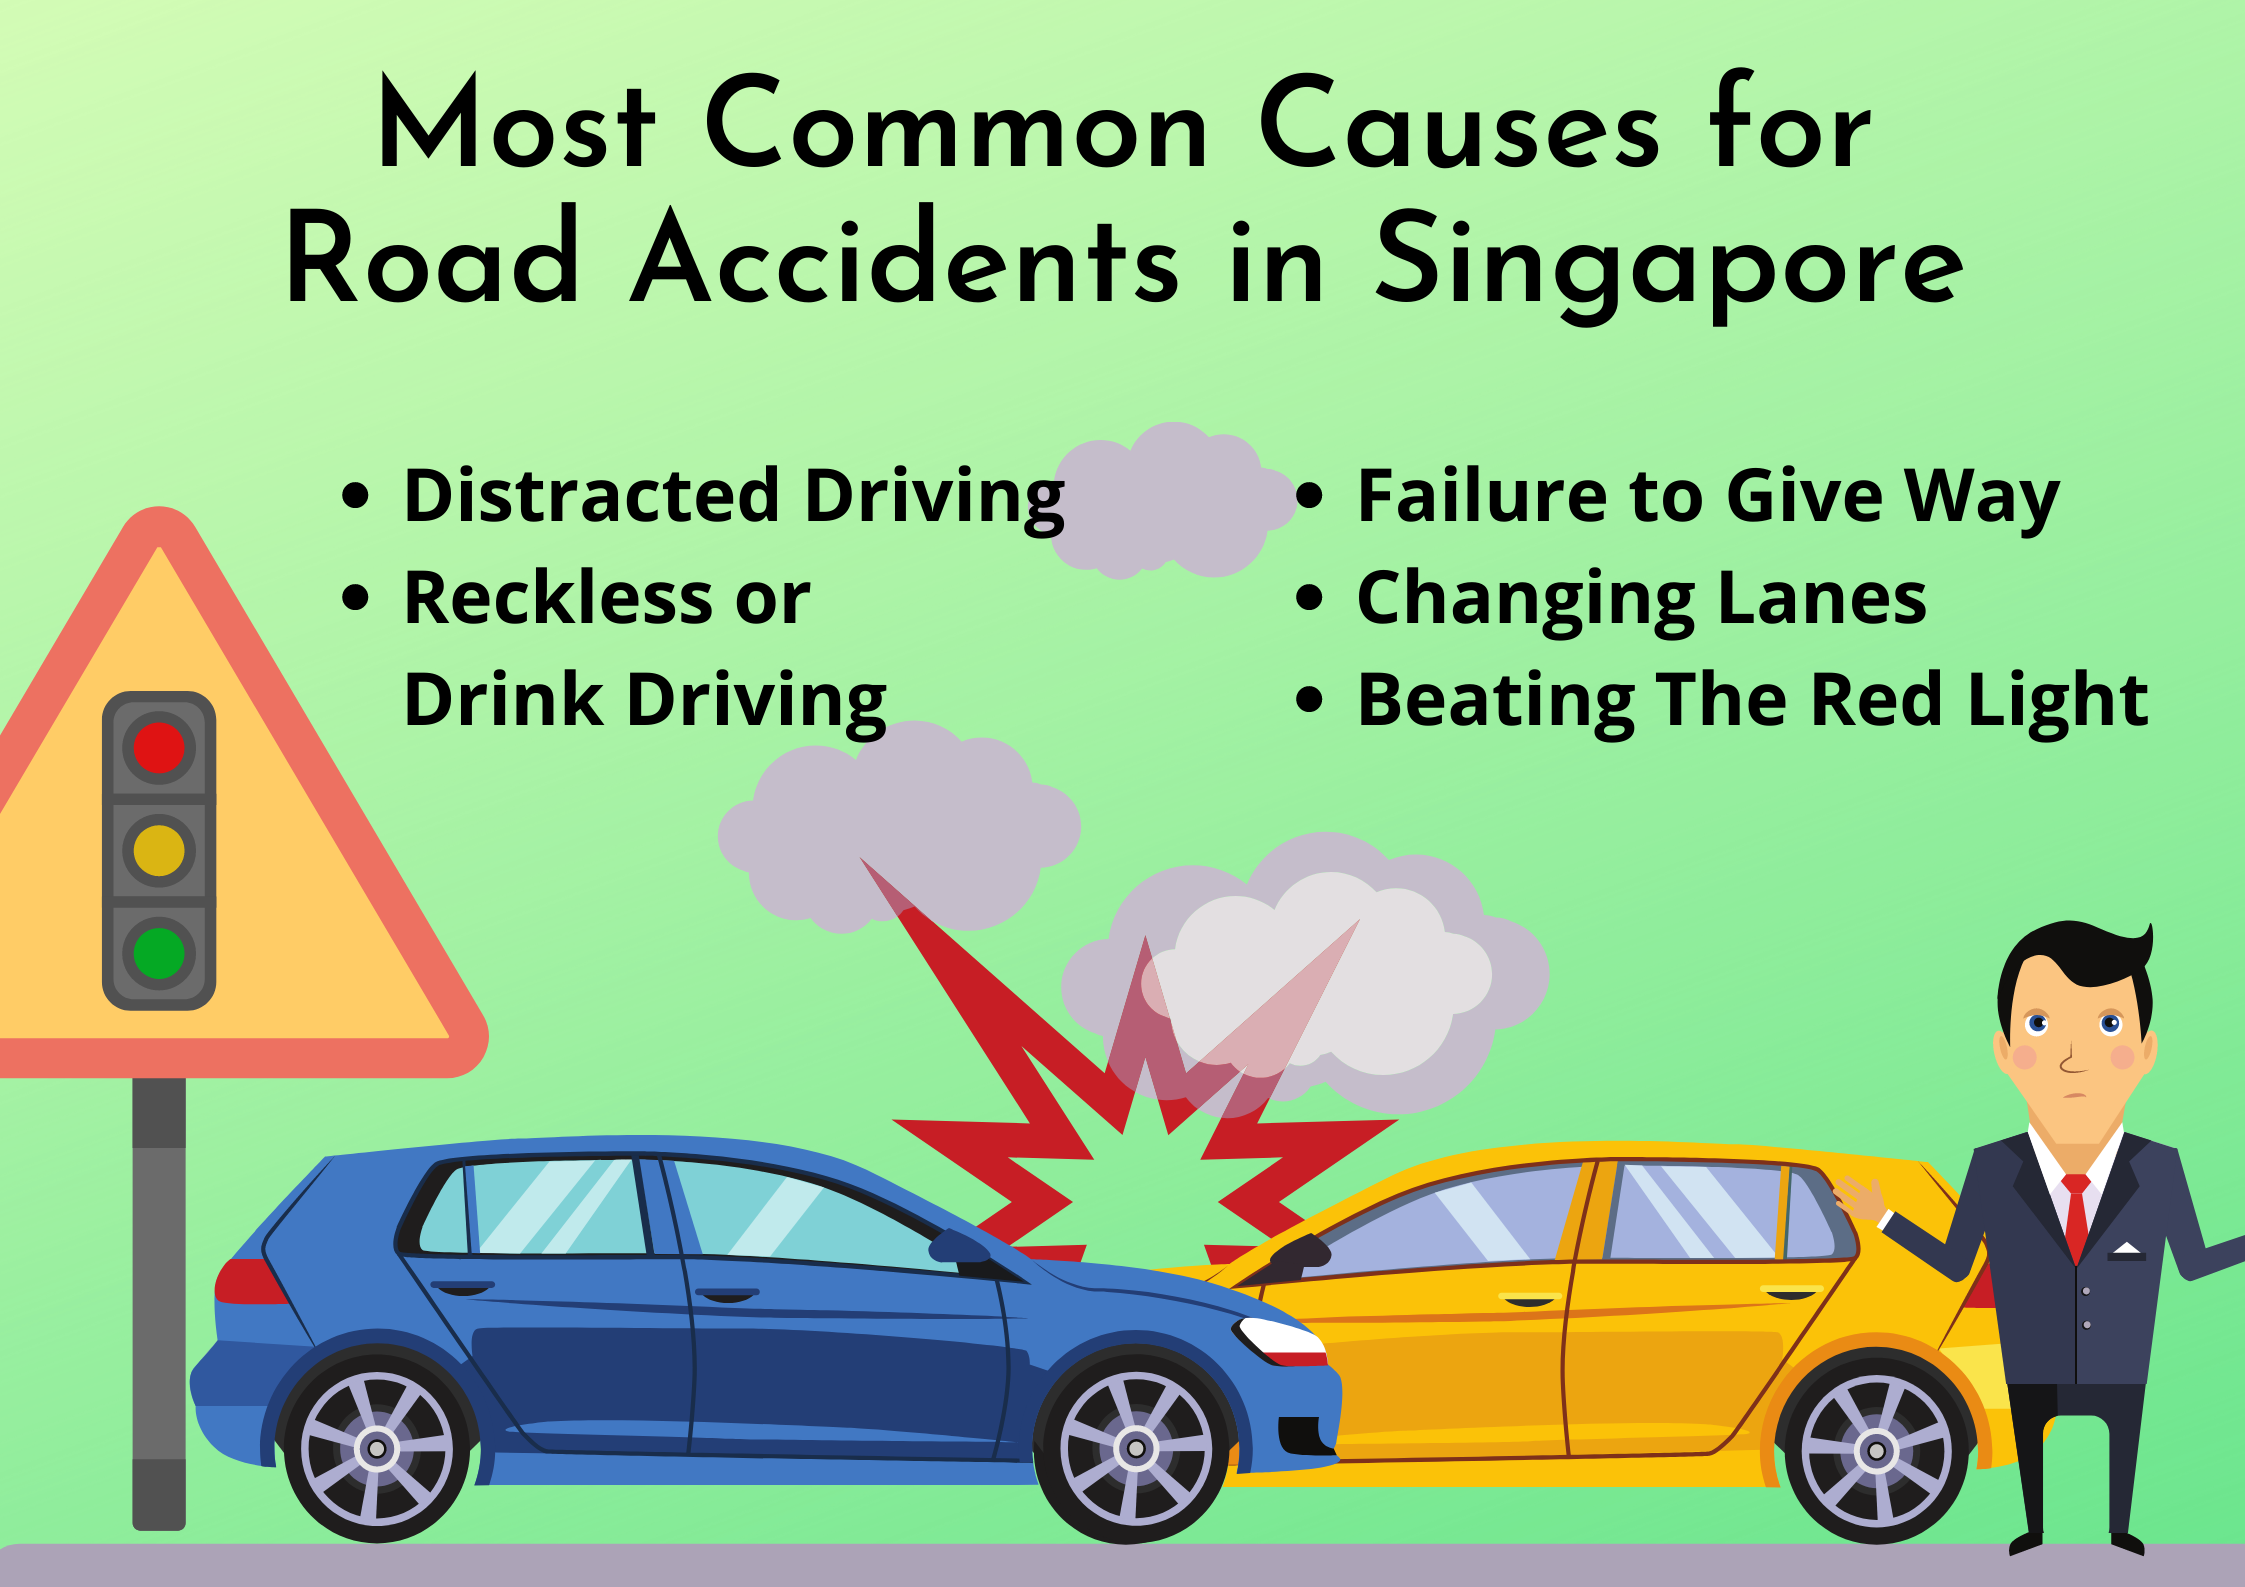 Most-Common-Causes-for-Road-Accidents-in-Singapore